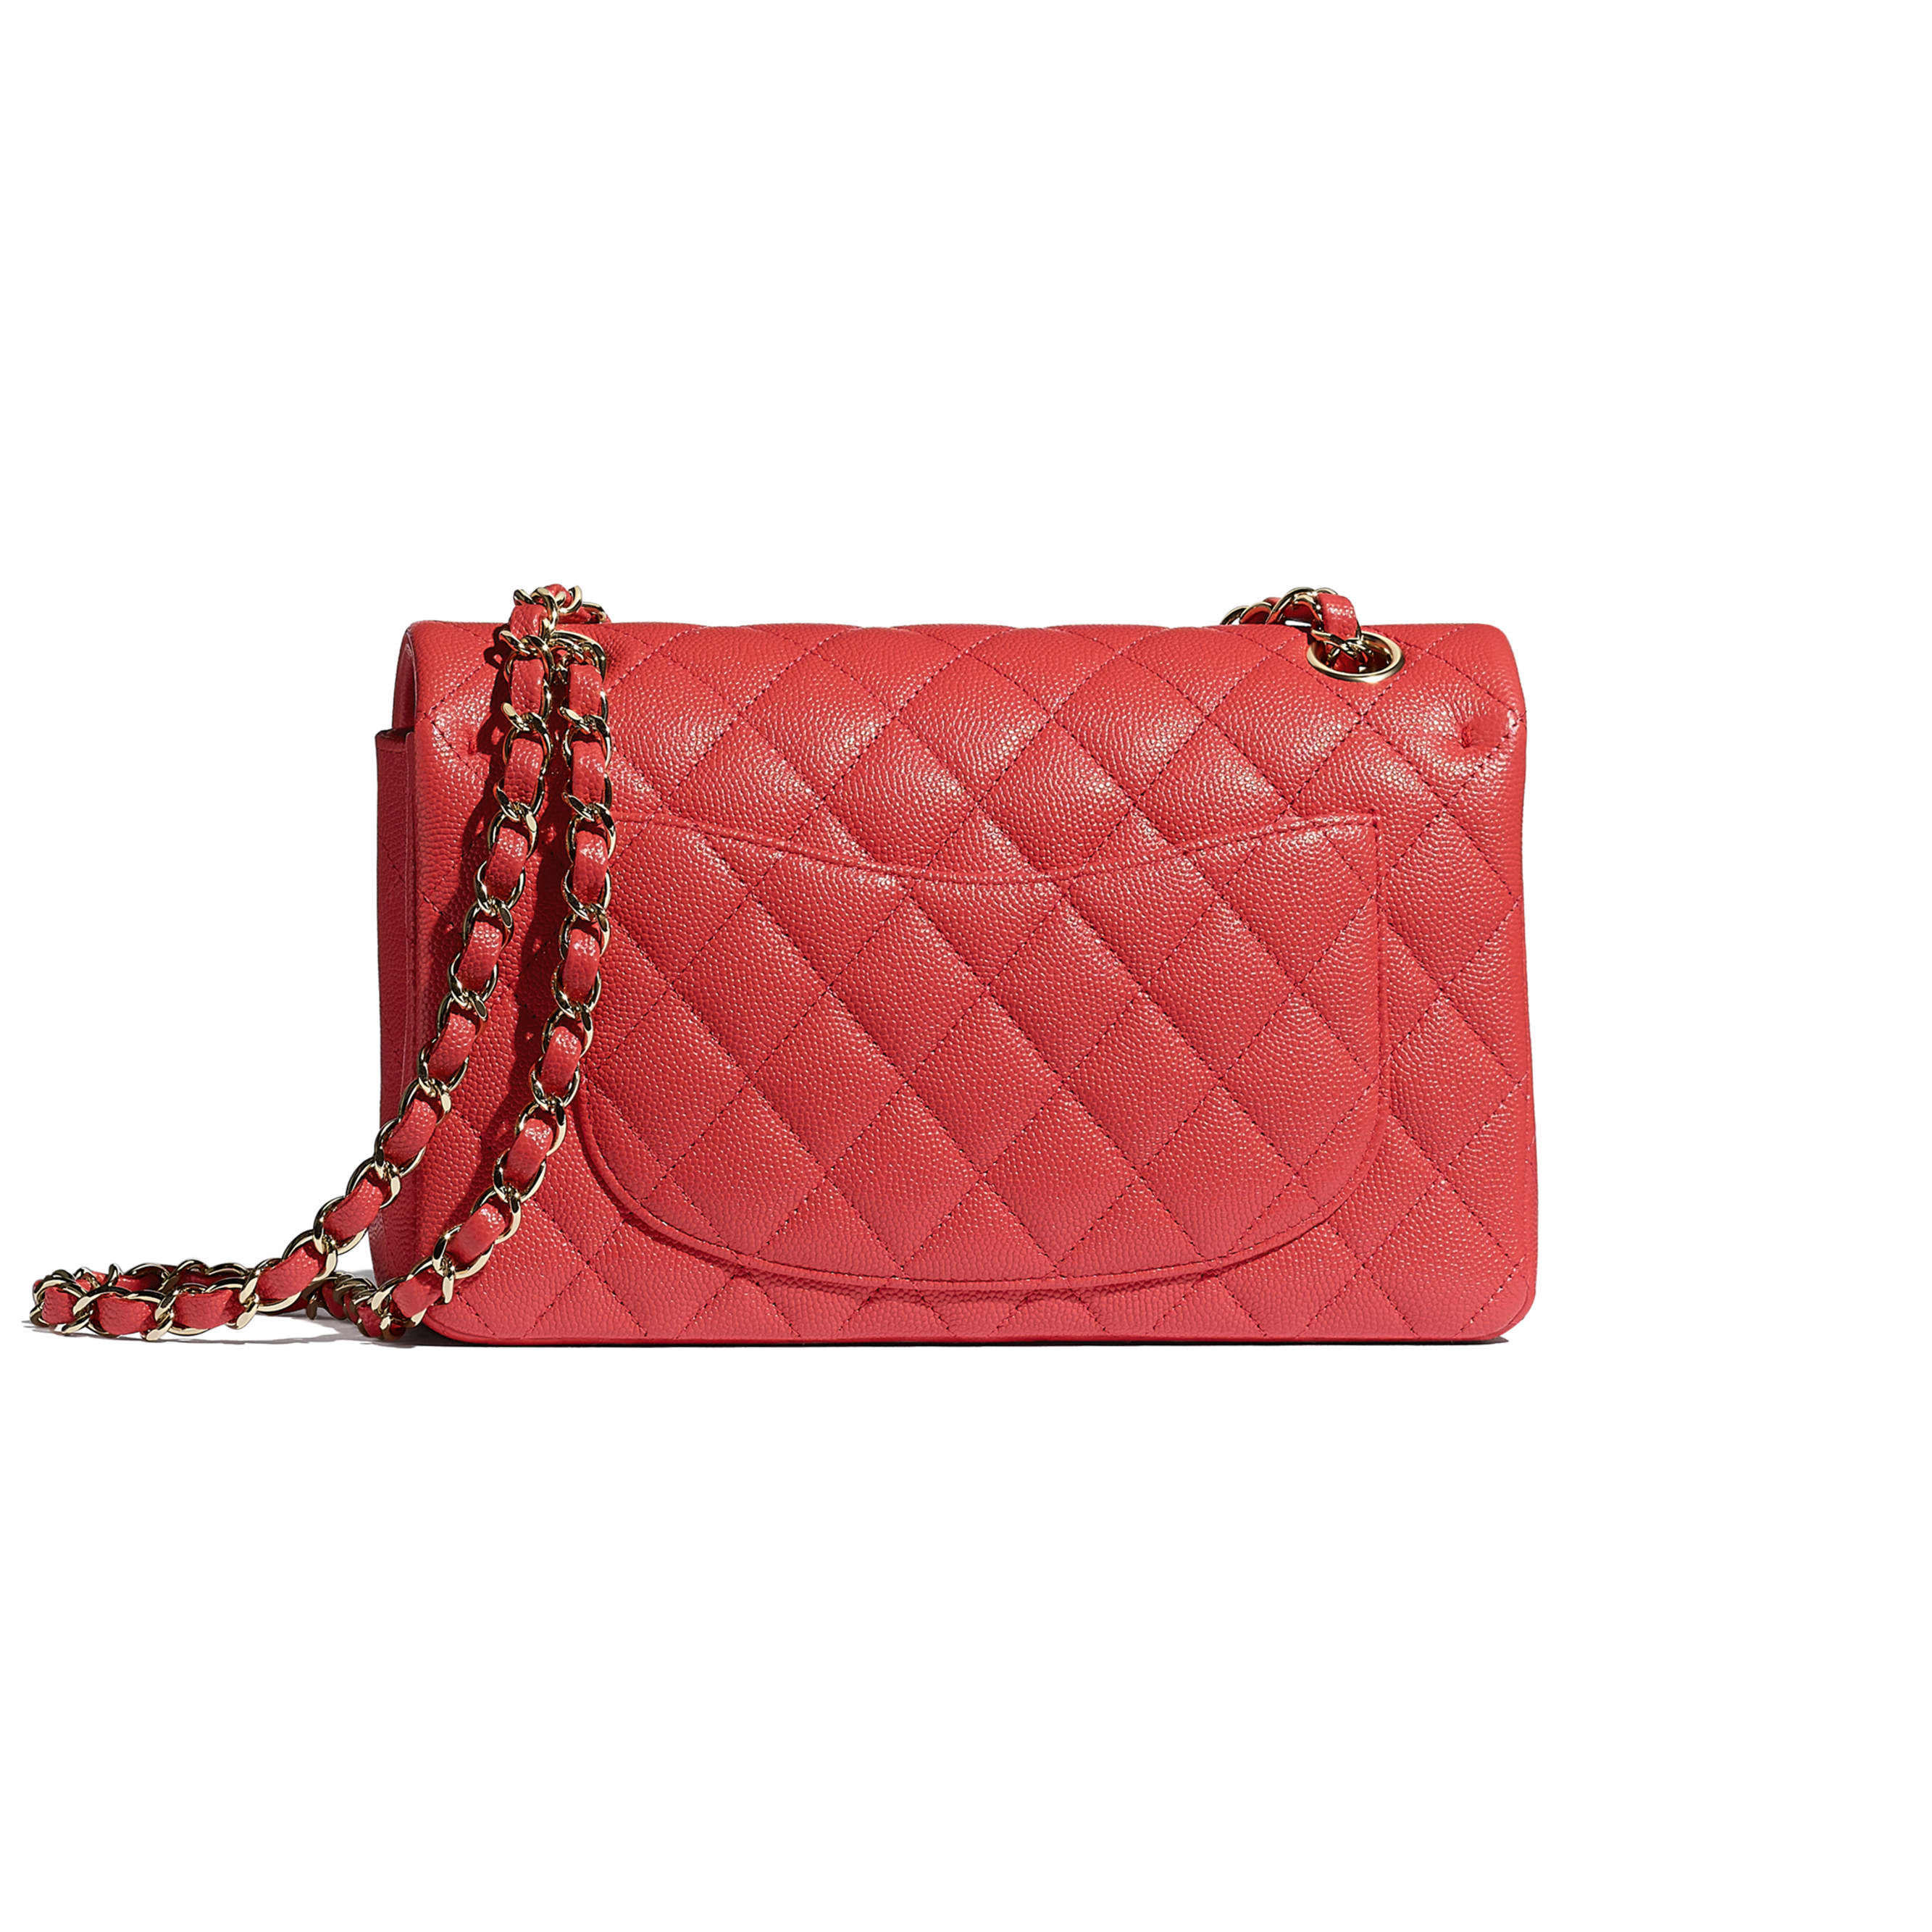 Classic Handbag - Red - Grained Calfskin & Gold-Tone Metal - CHANEL - Alternative view - see standard sized version